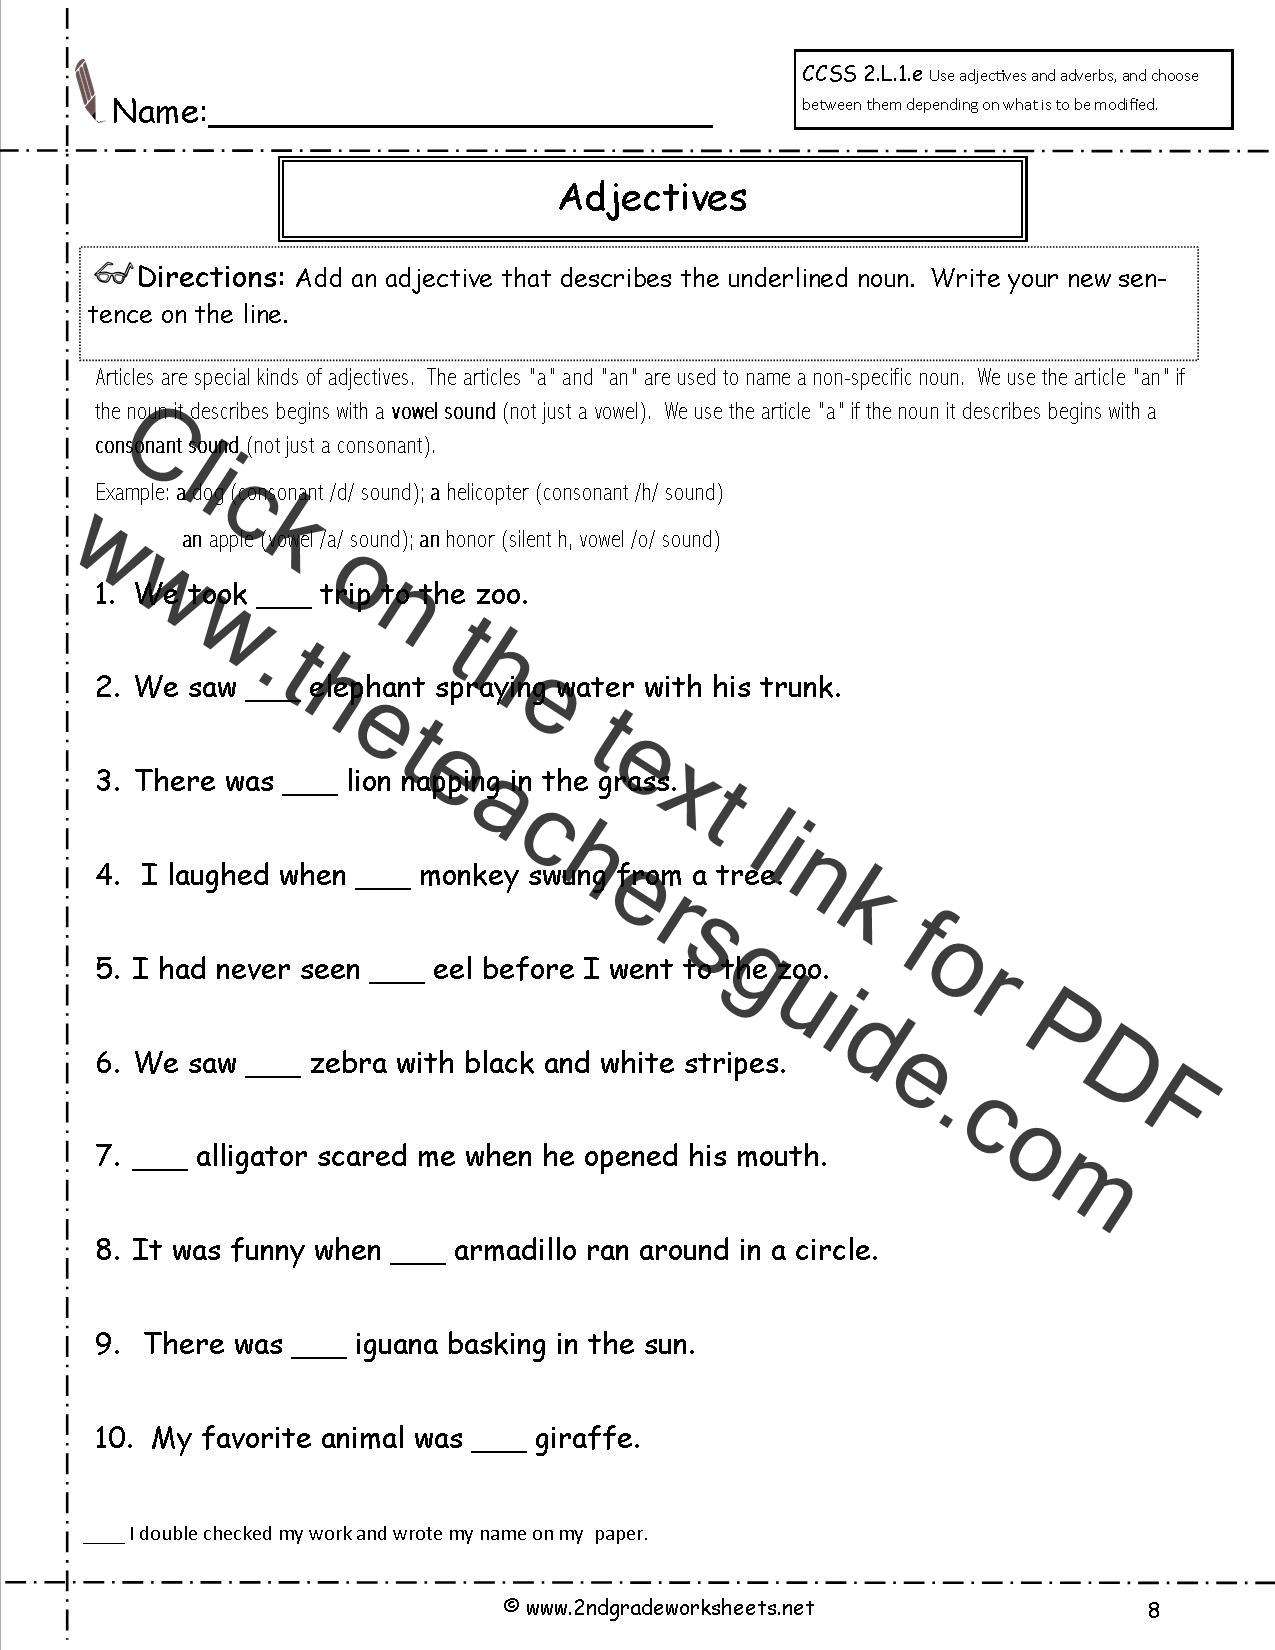 Worksheet 2nd Grade Grammar Worksheets free languagegrammar worksheets and printouts adjectives worksheets